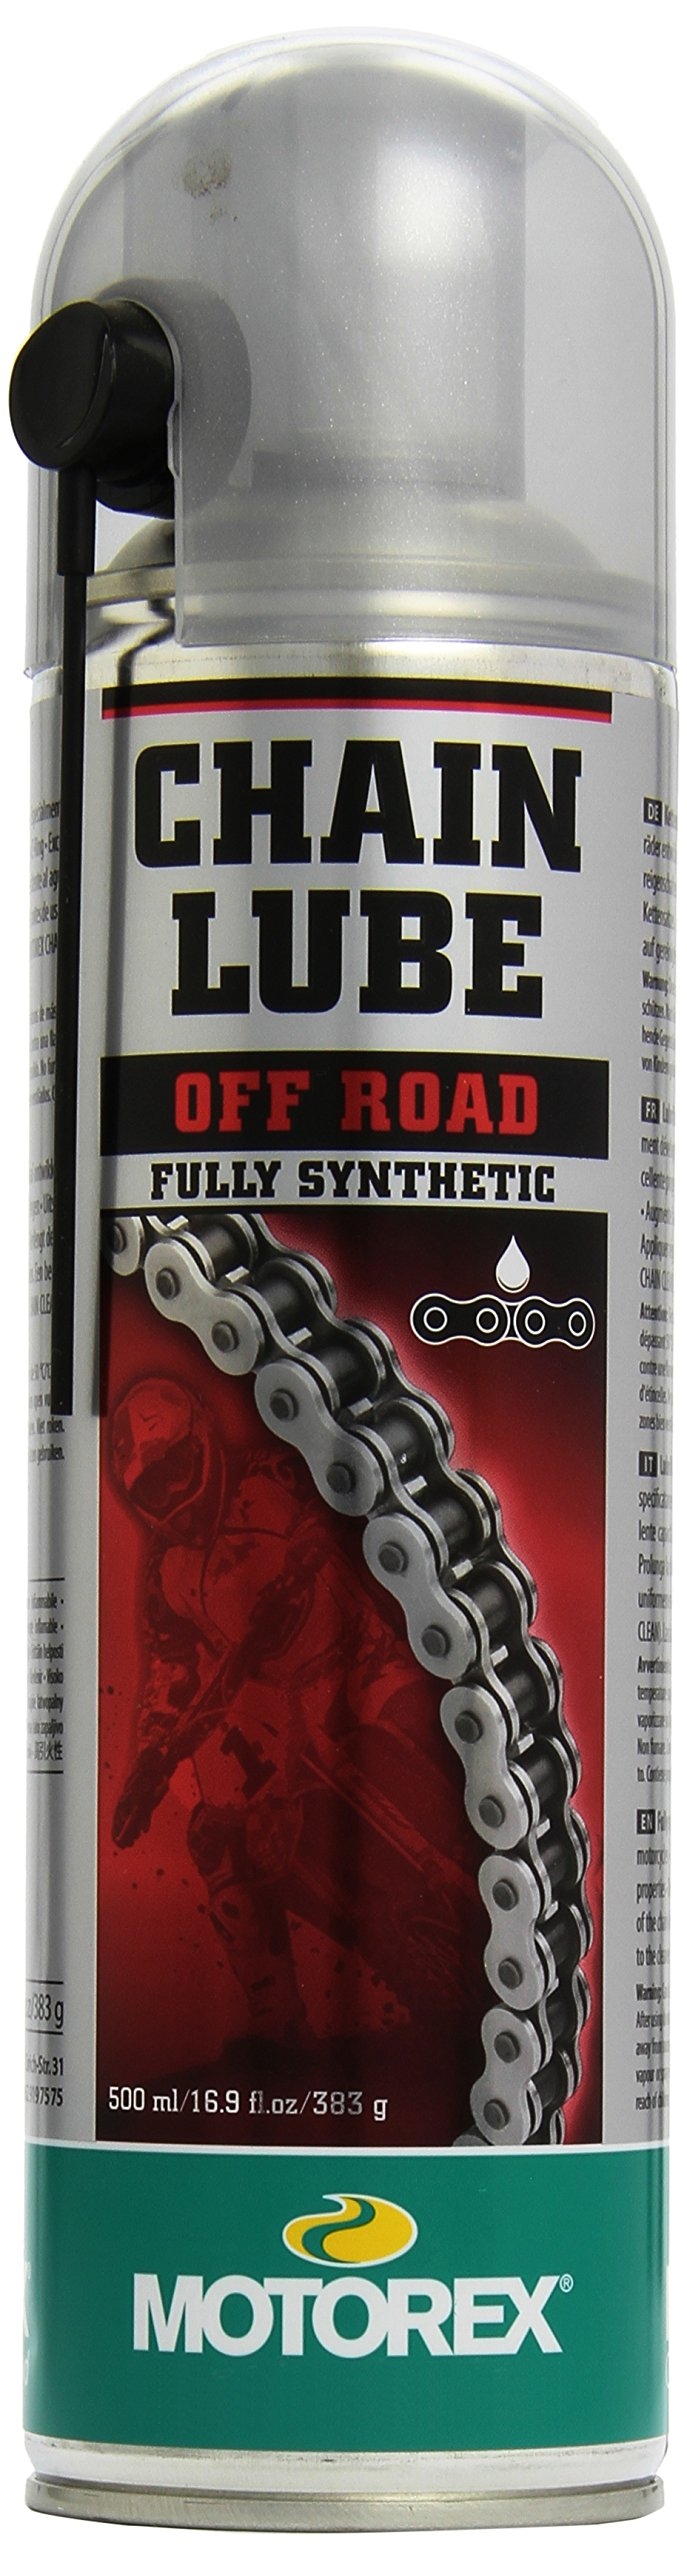 Motorex Chain Lube 622 Offroad Spray - 500ml. Aerosol 171-622-050